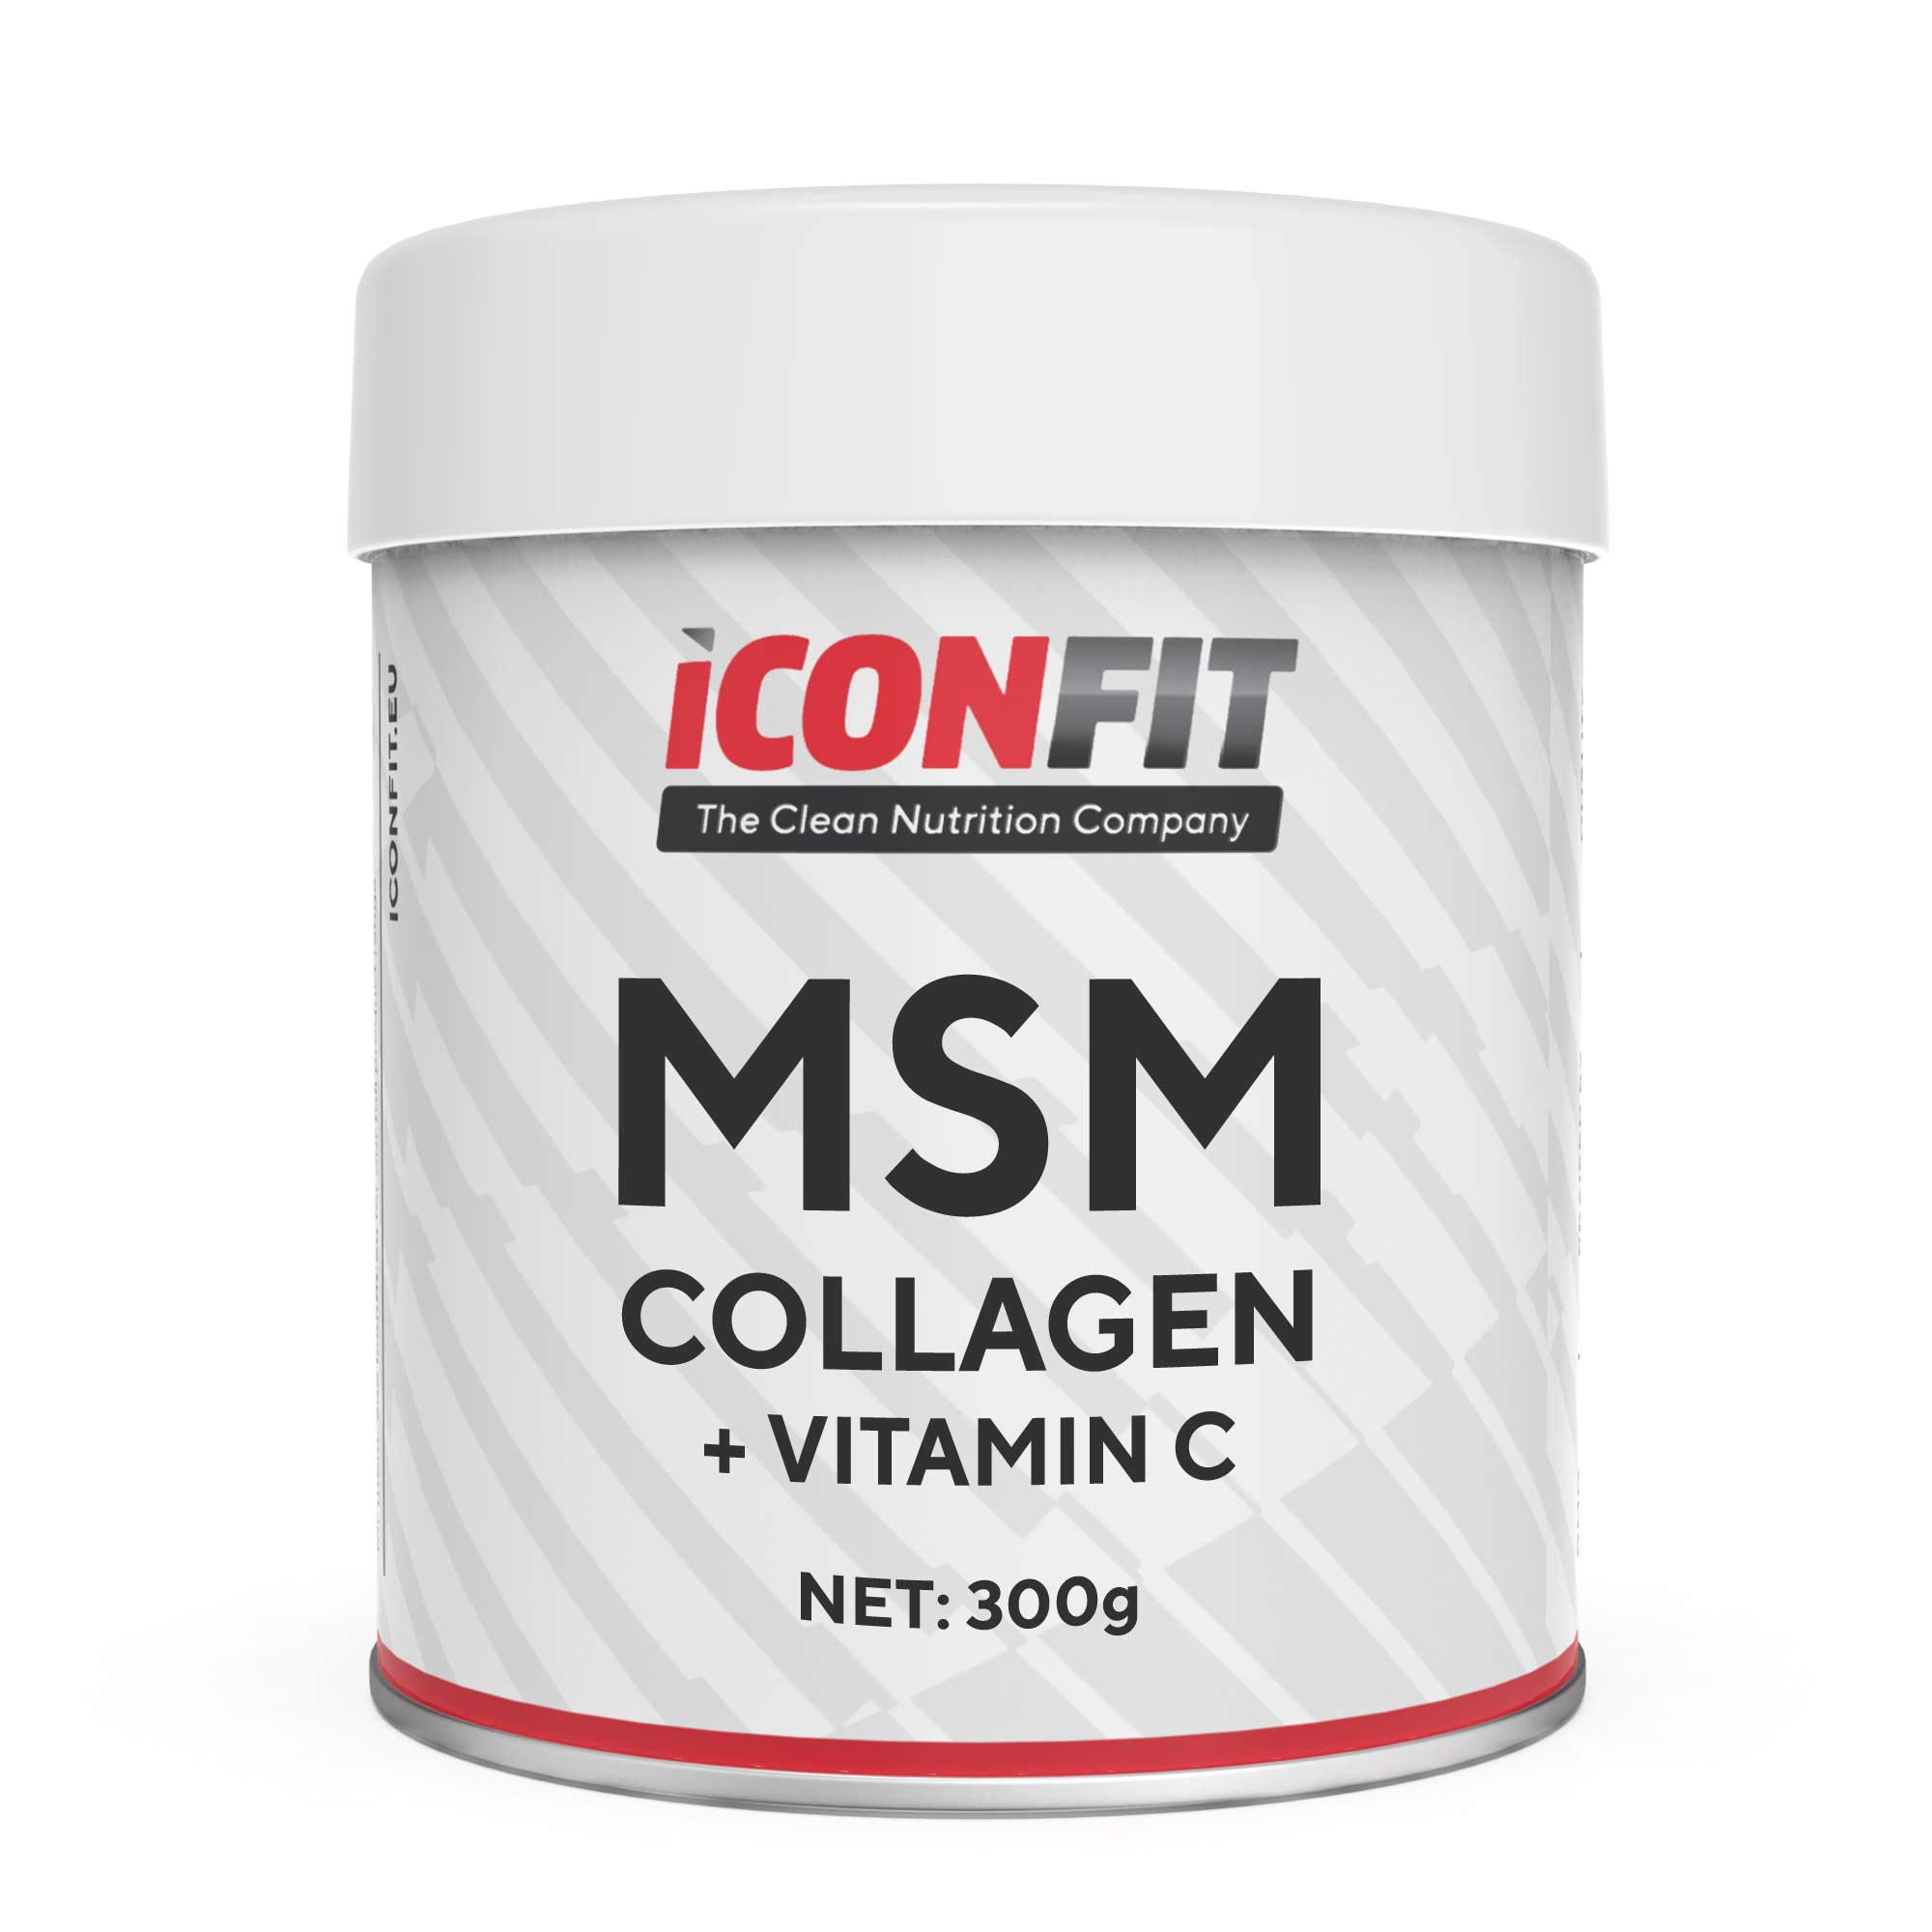 ICONFIT MSM Collagen vitC 300g v1